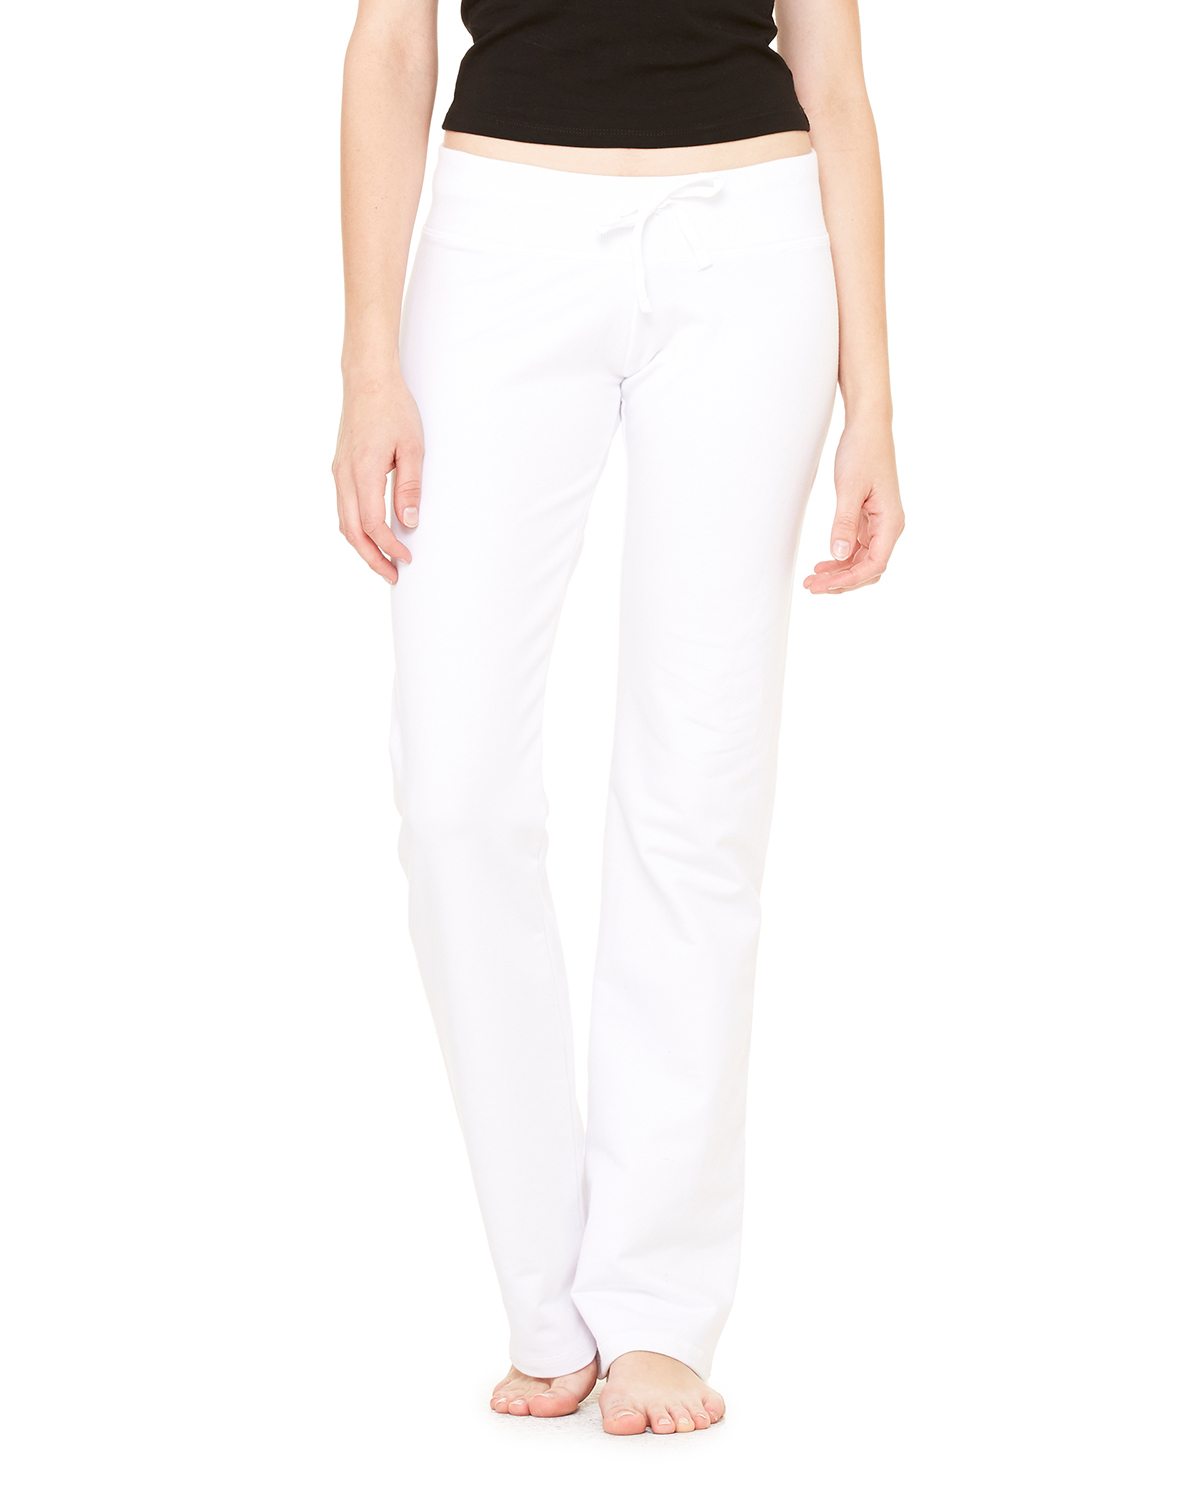 Bella 7217 Ladies' French Terry Lounge Pants